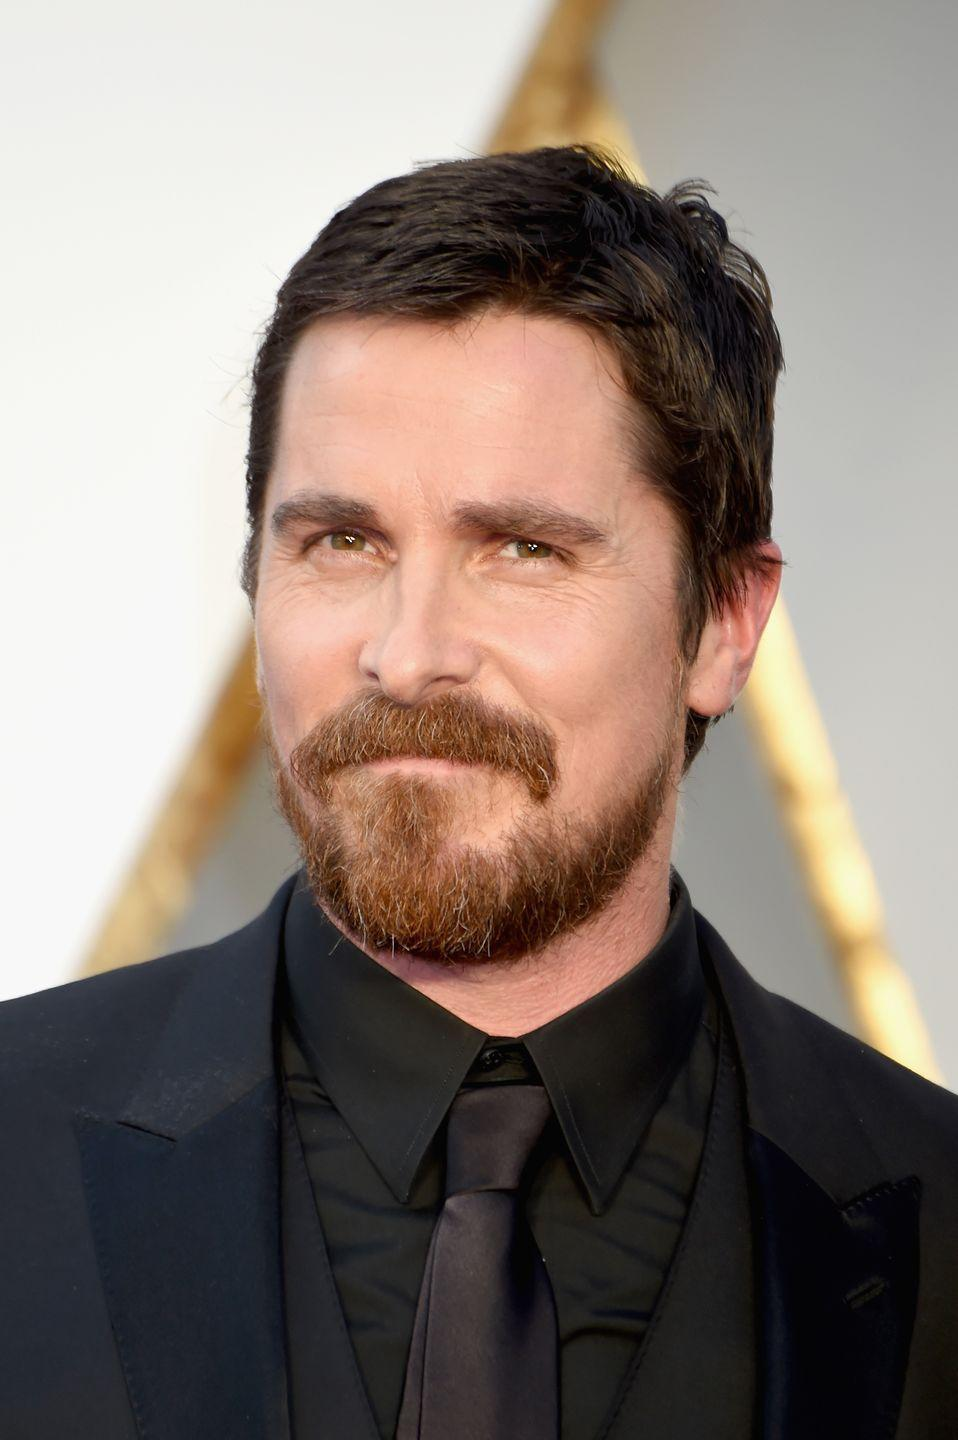 "<p>""Time healed those wounds. But it took a while,"" Bale told <em><a href=""http://ew.com/article/2007/08/31/spotlight-christian-bale/"" rel=""nofollow noopener"" target=""_blank"" data-ylk=""slk:Entertainment Weekly"" class=""link rapid-noclick-resp"">Entertainment Weekly</a> </em>about the 1992 film. </p>"